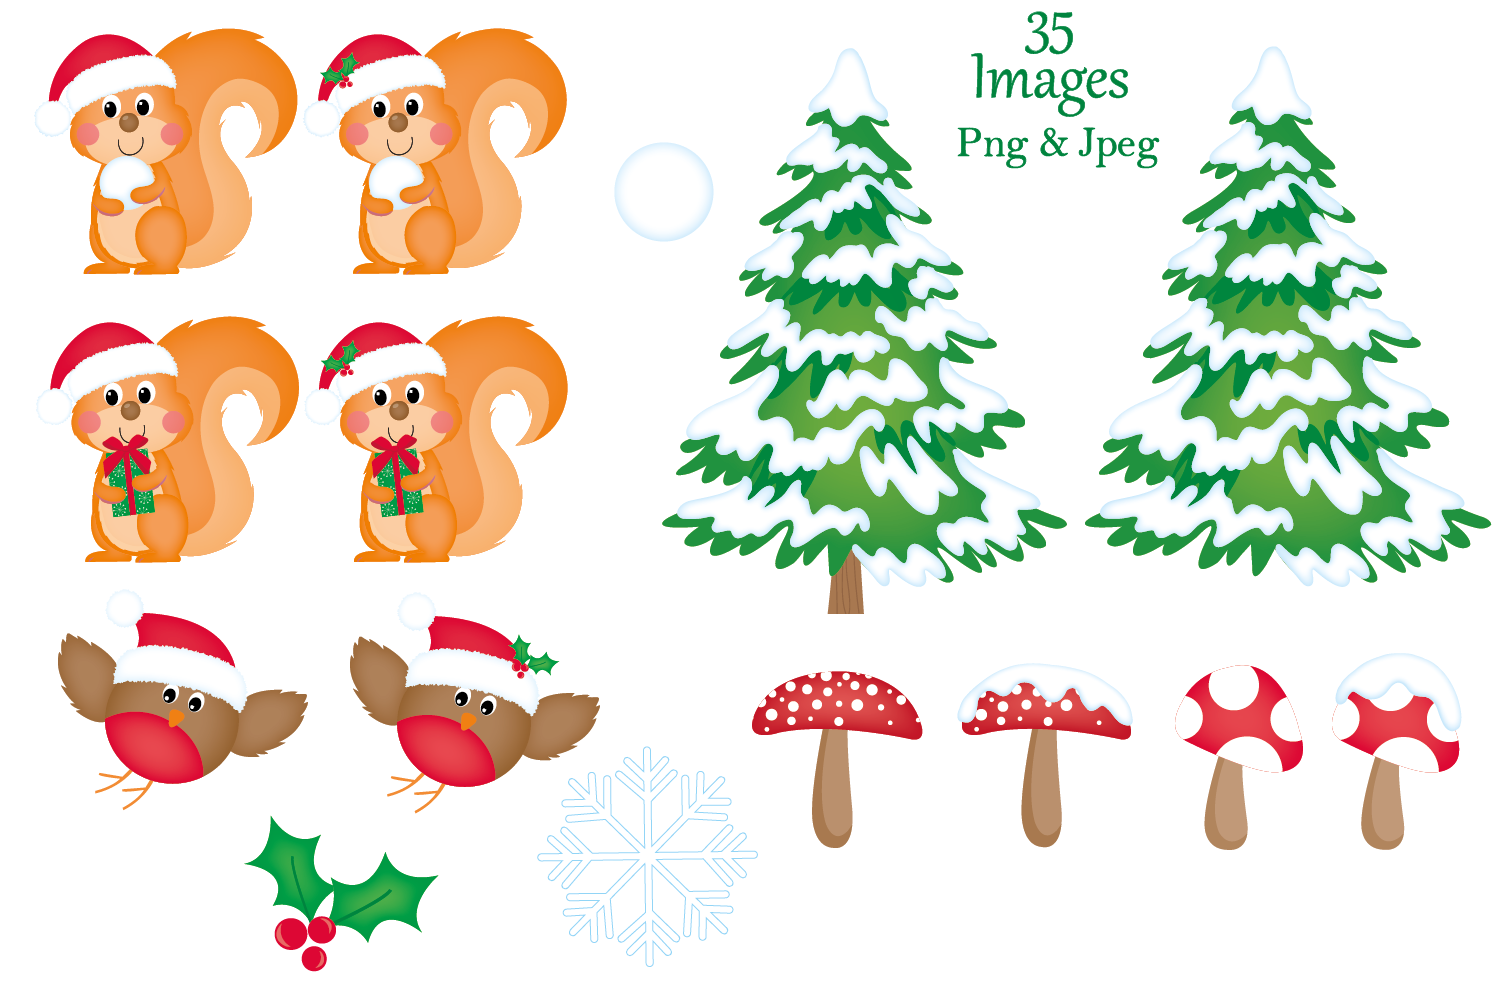 Christmas clipart,Christmas graphics & illustrations,Animals example image 3